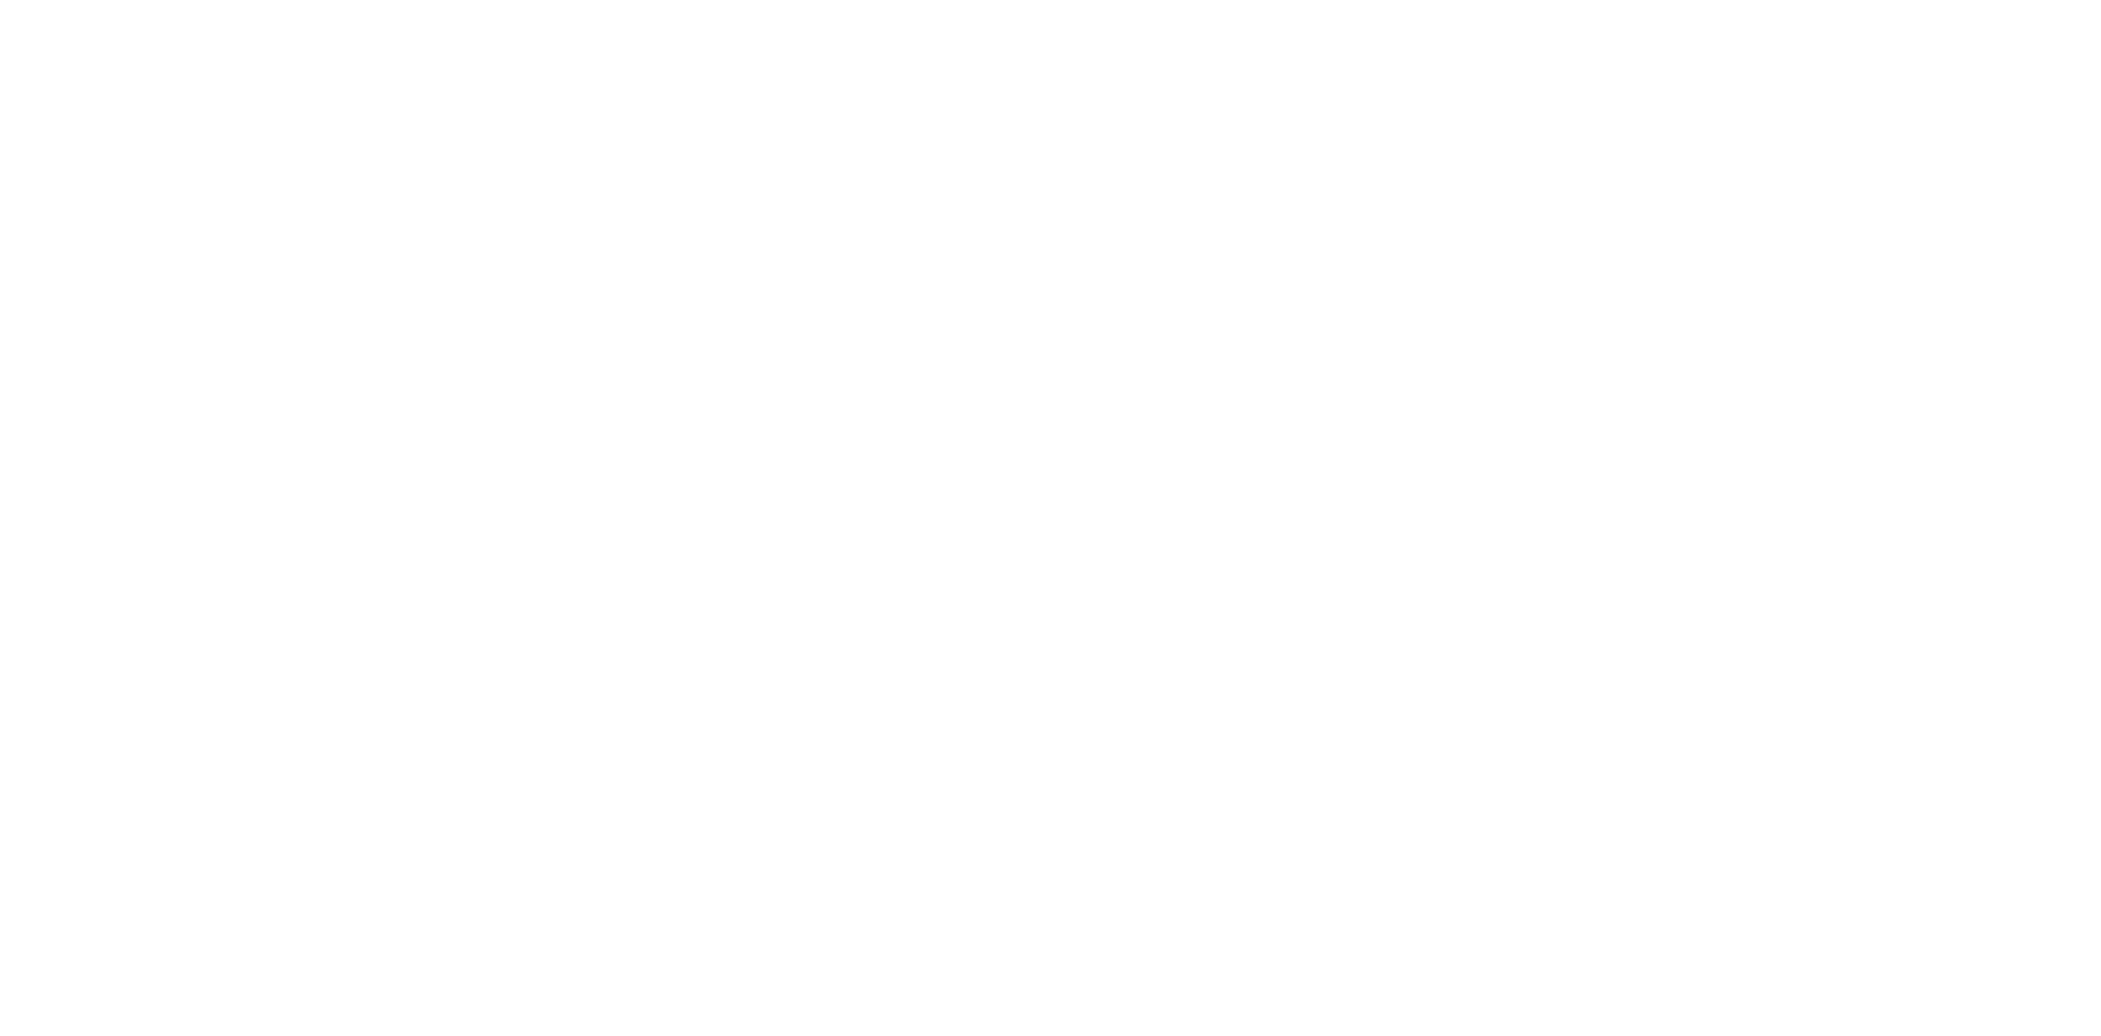 Surfrider Foundation Rhode Island Chapter